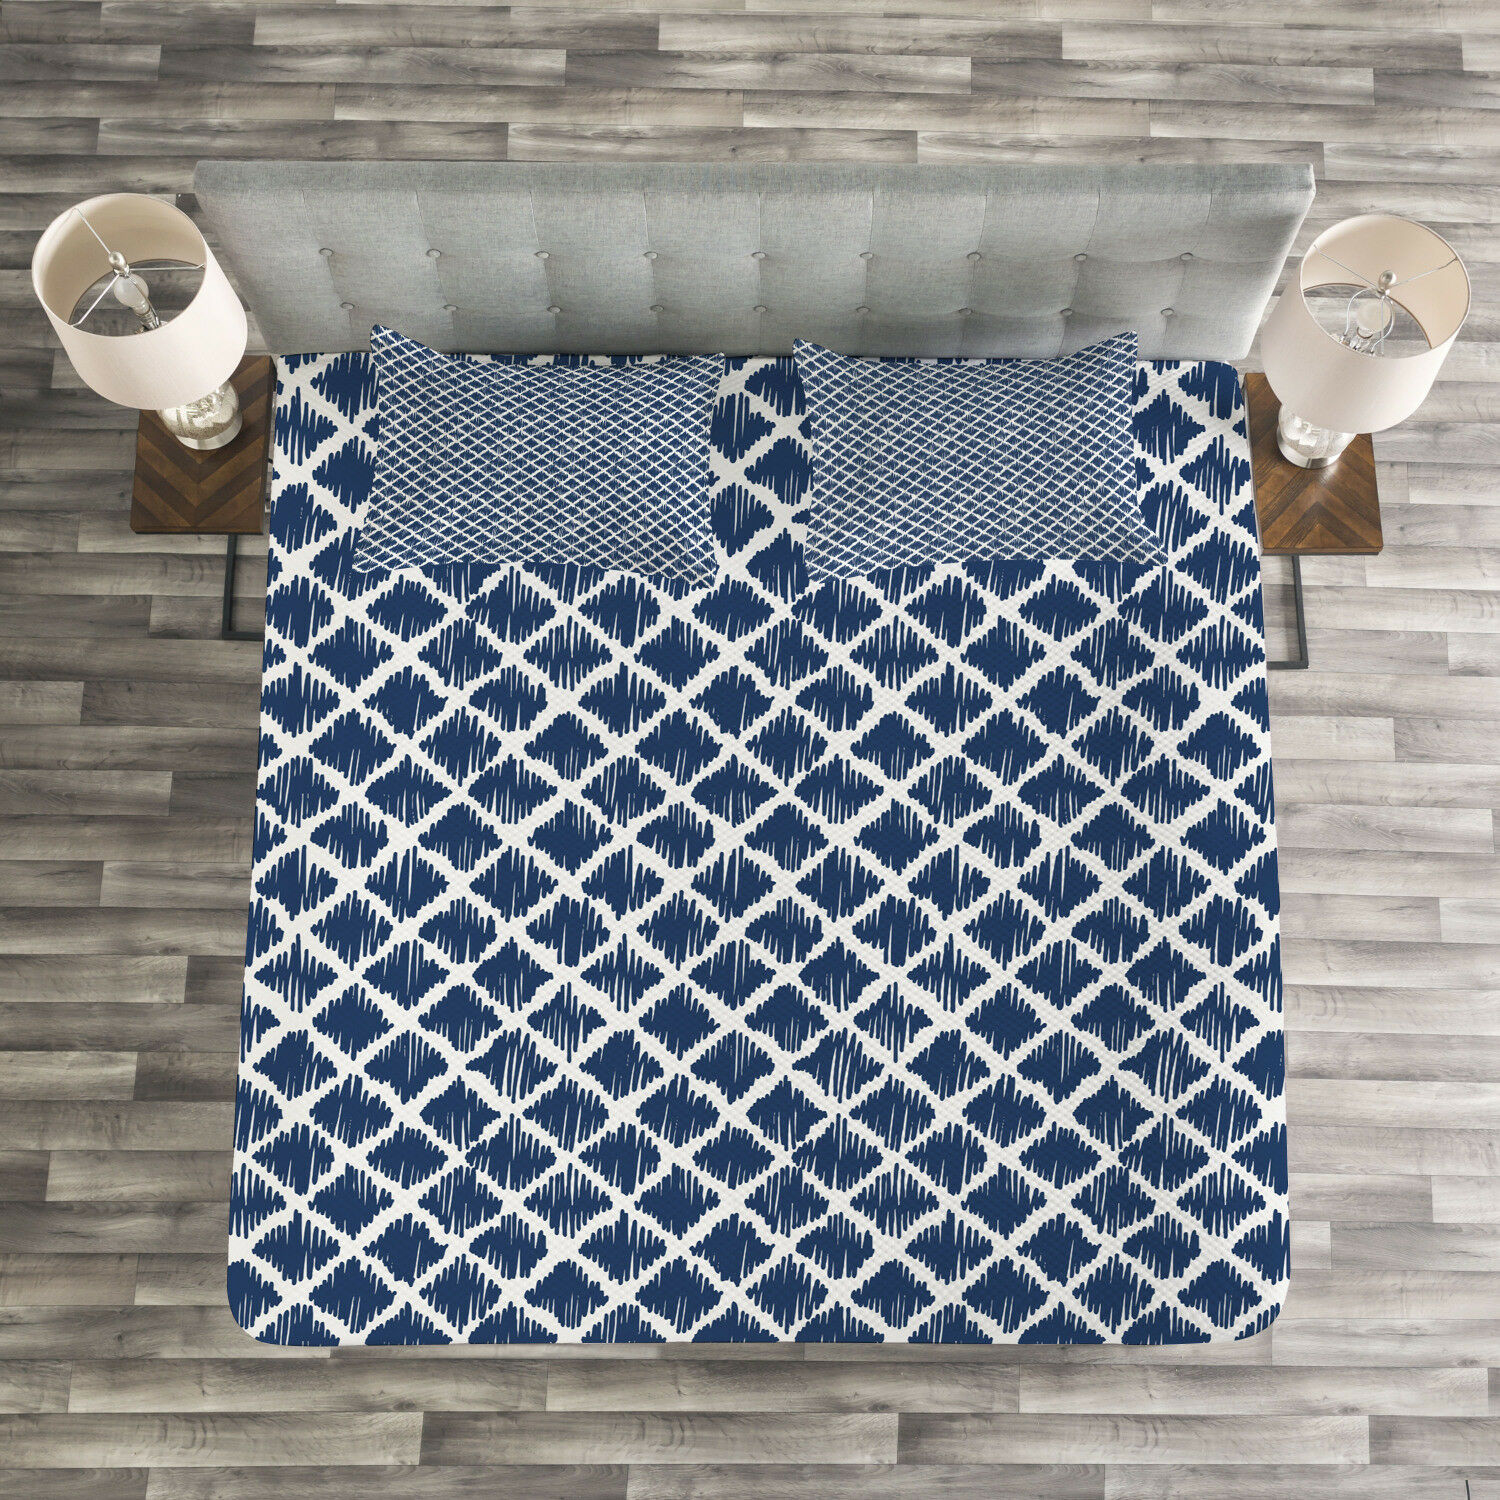 Petrol blueeee Quilted Bedspread & Pillow Shams Set, Sketchy Inner Shape Print